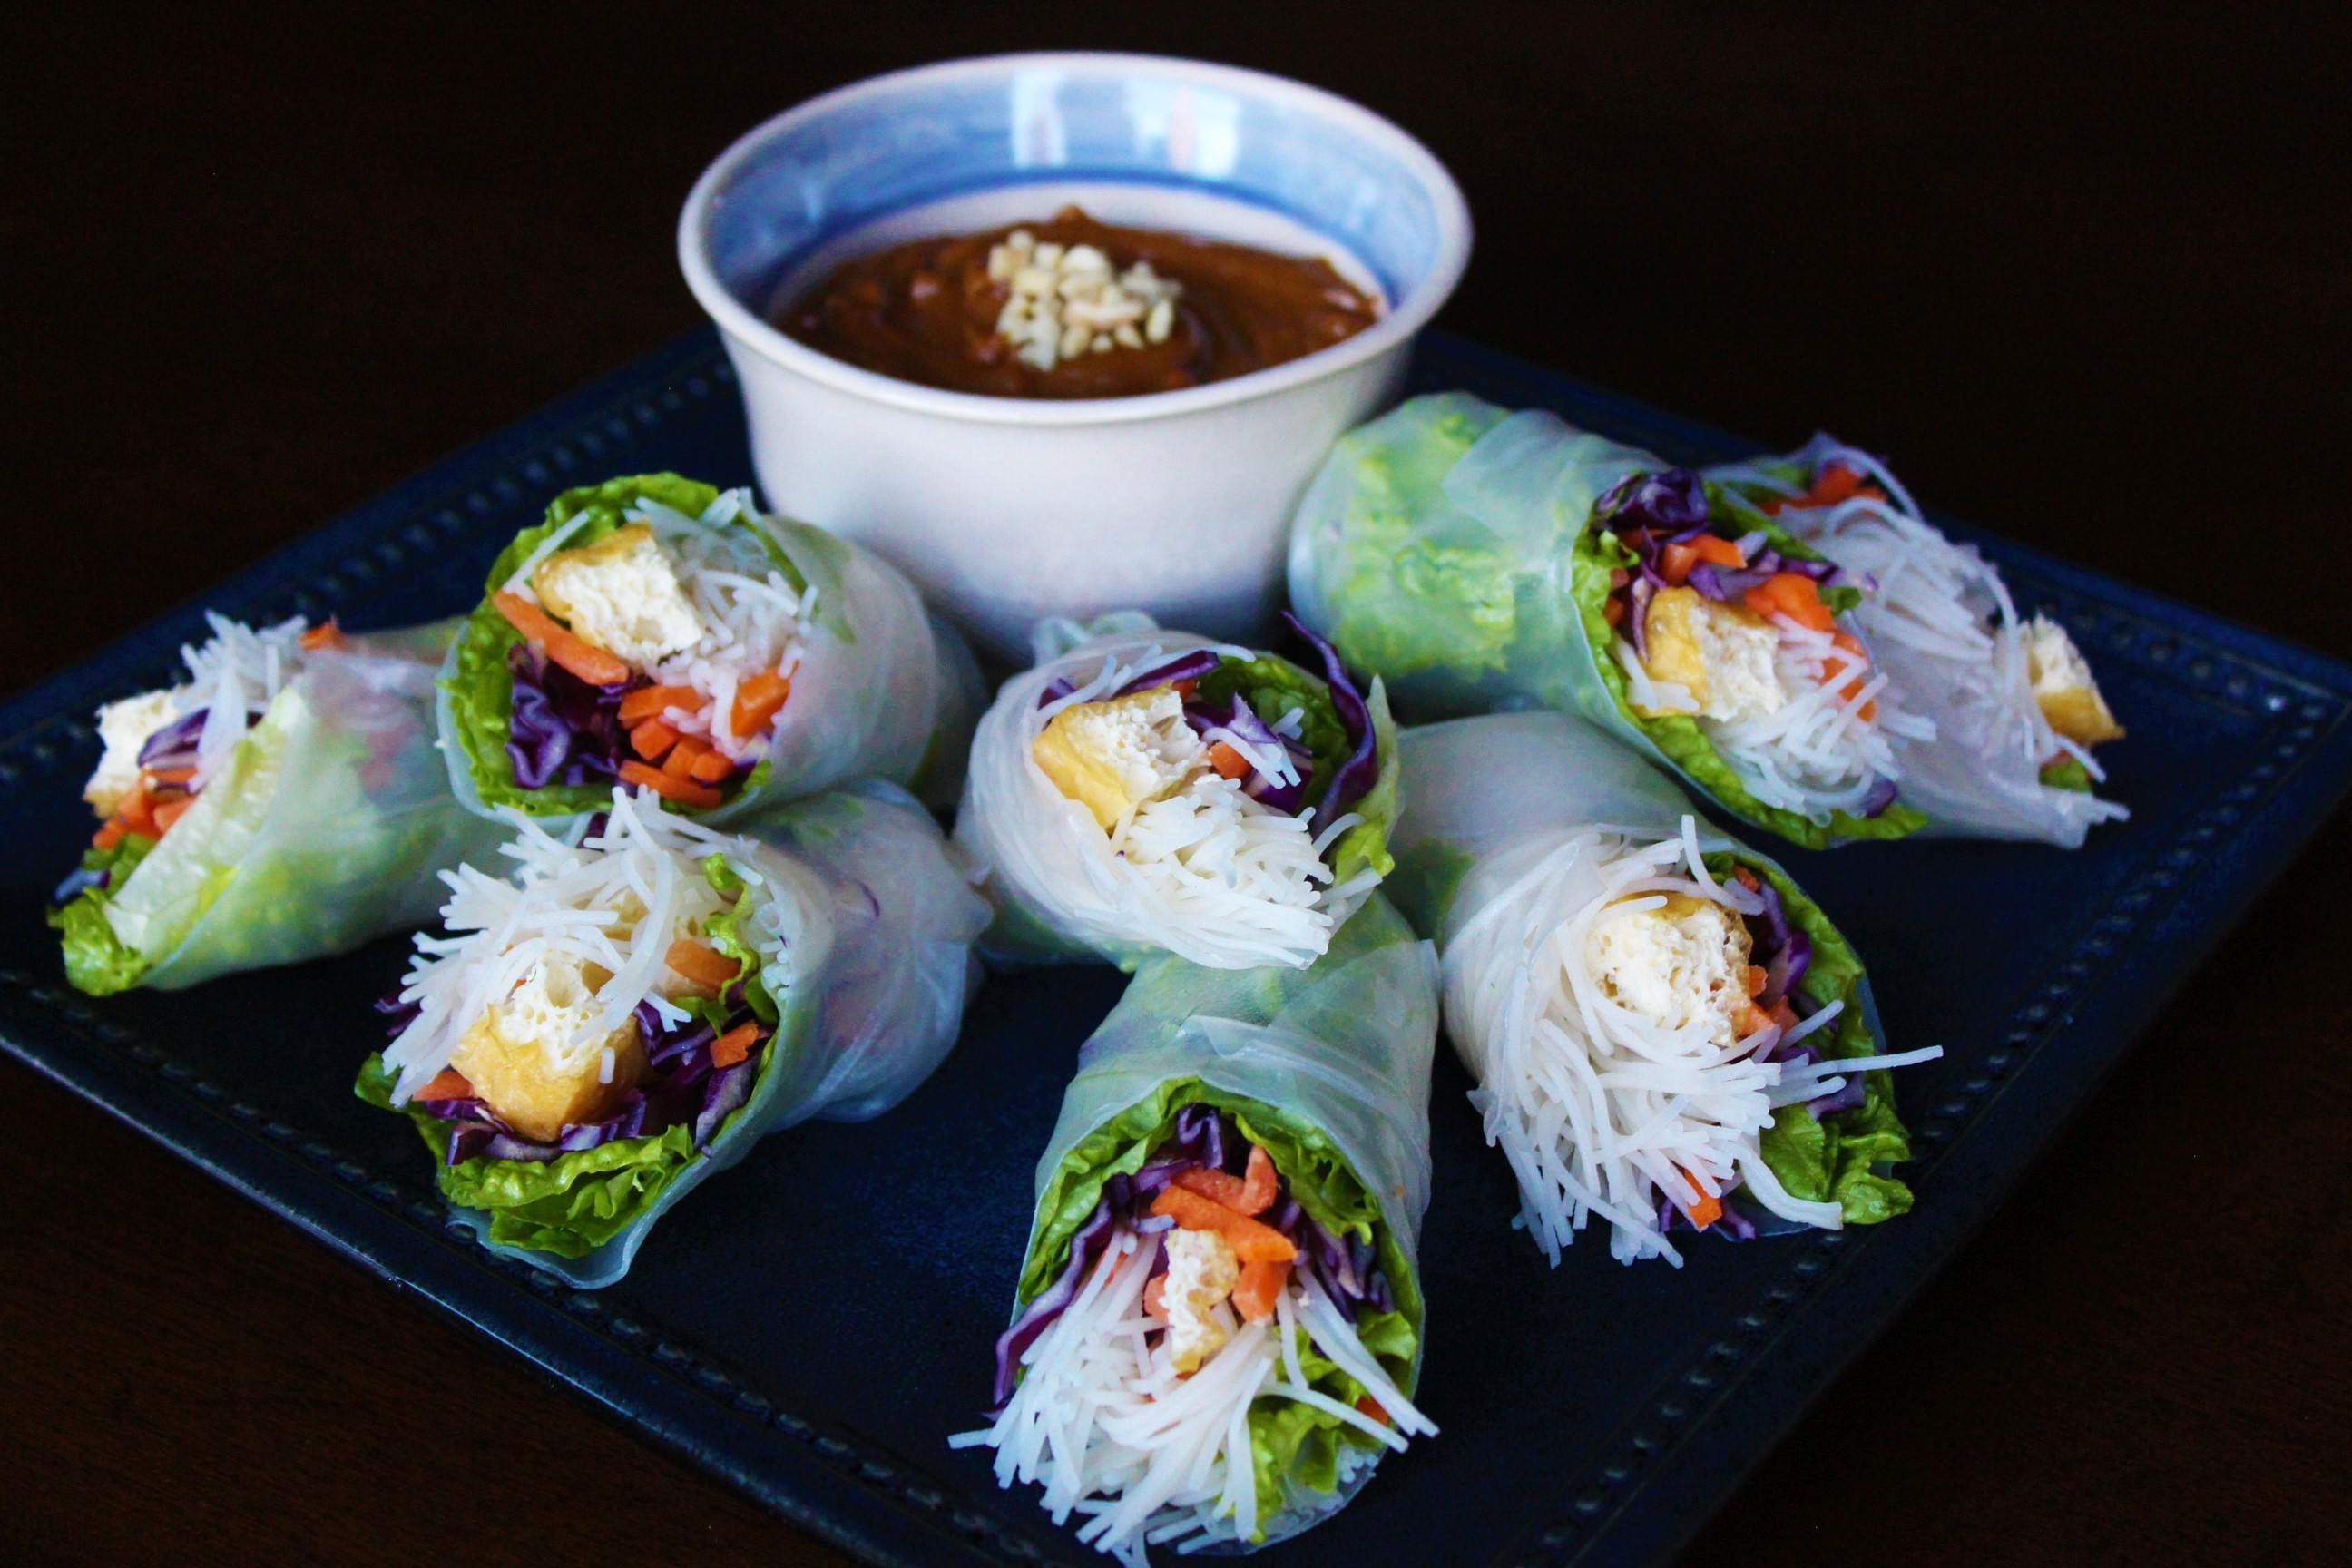 Salad Rolls with Peanut Sauce